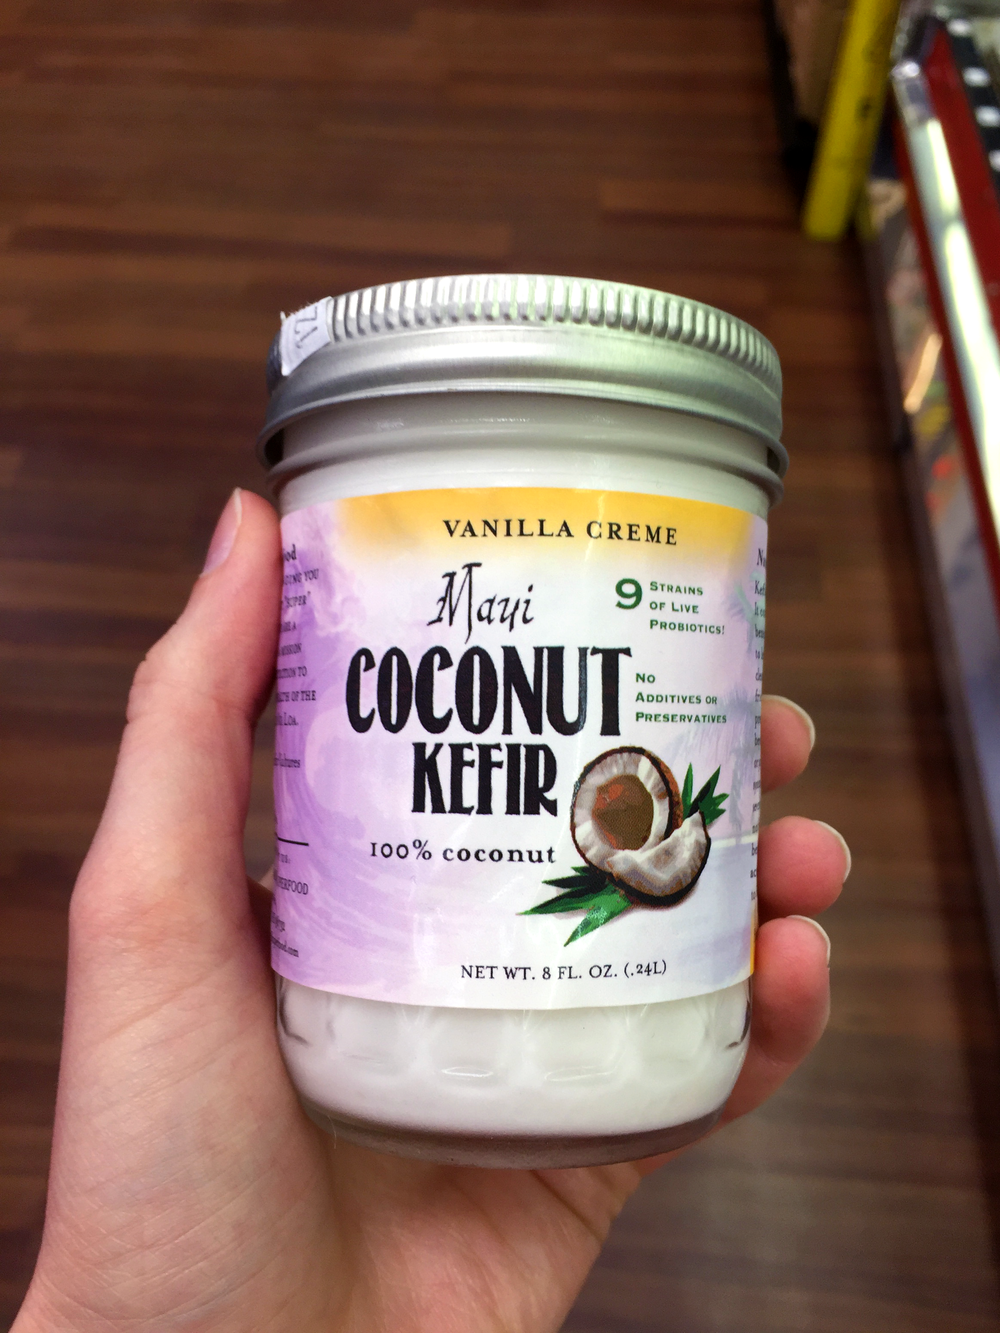 Coconut kefir from Hawaiian Moons Natural Foods